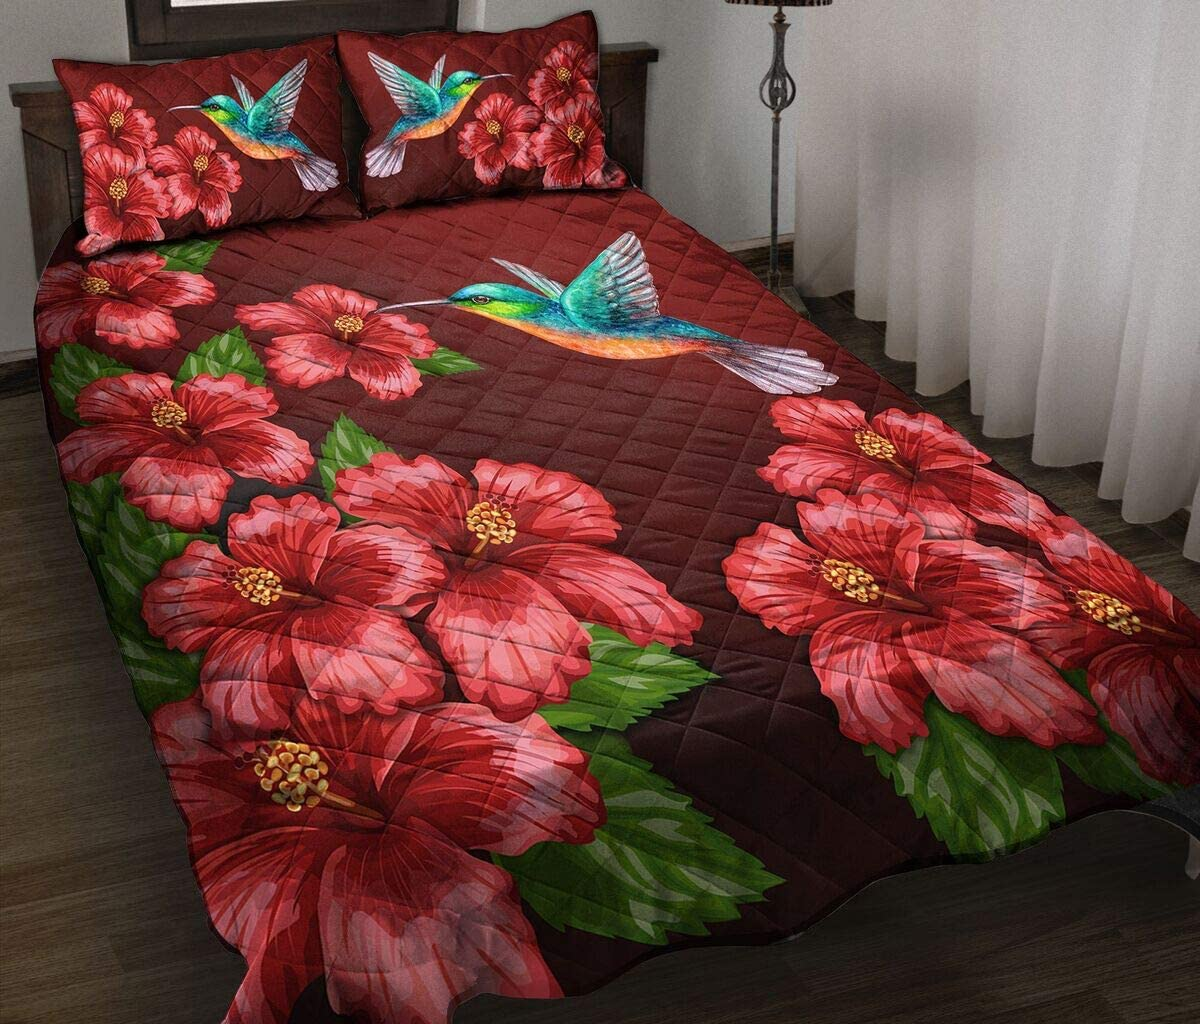 Personalized Hummingbird Floral 2021 autumn and winter new Quilt Gift Elegant for Your Birt Lovers